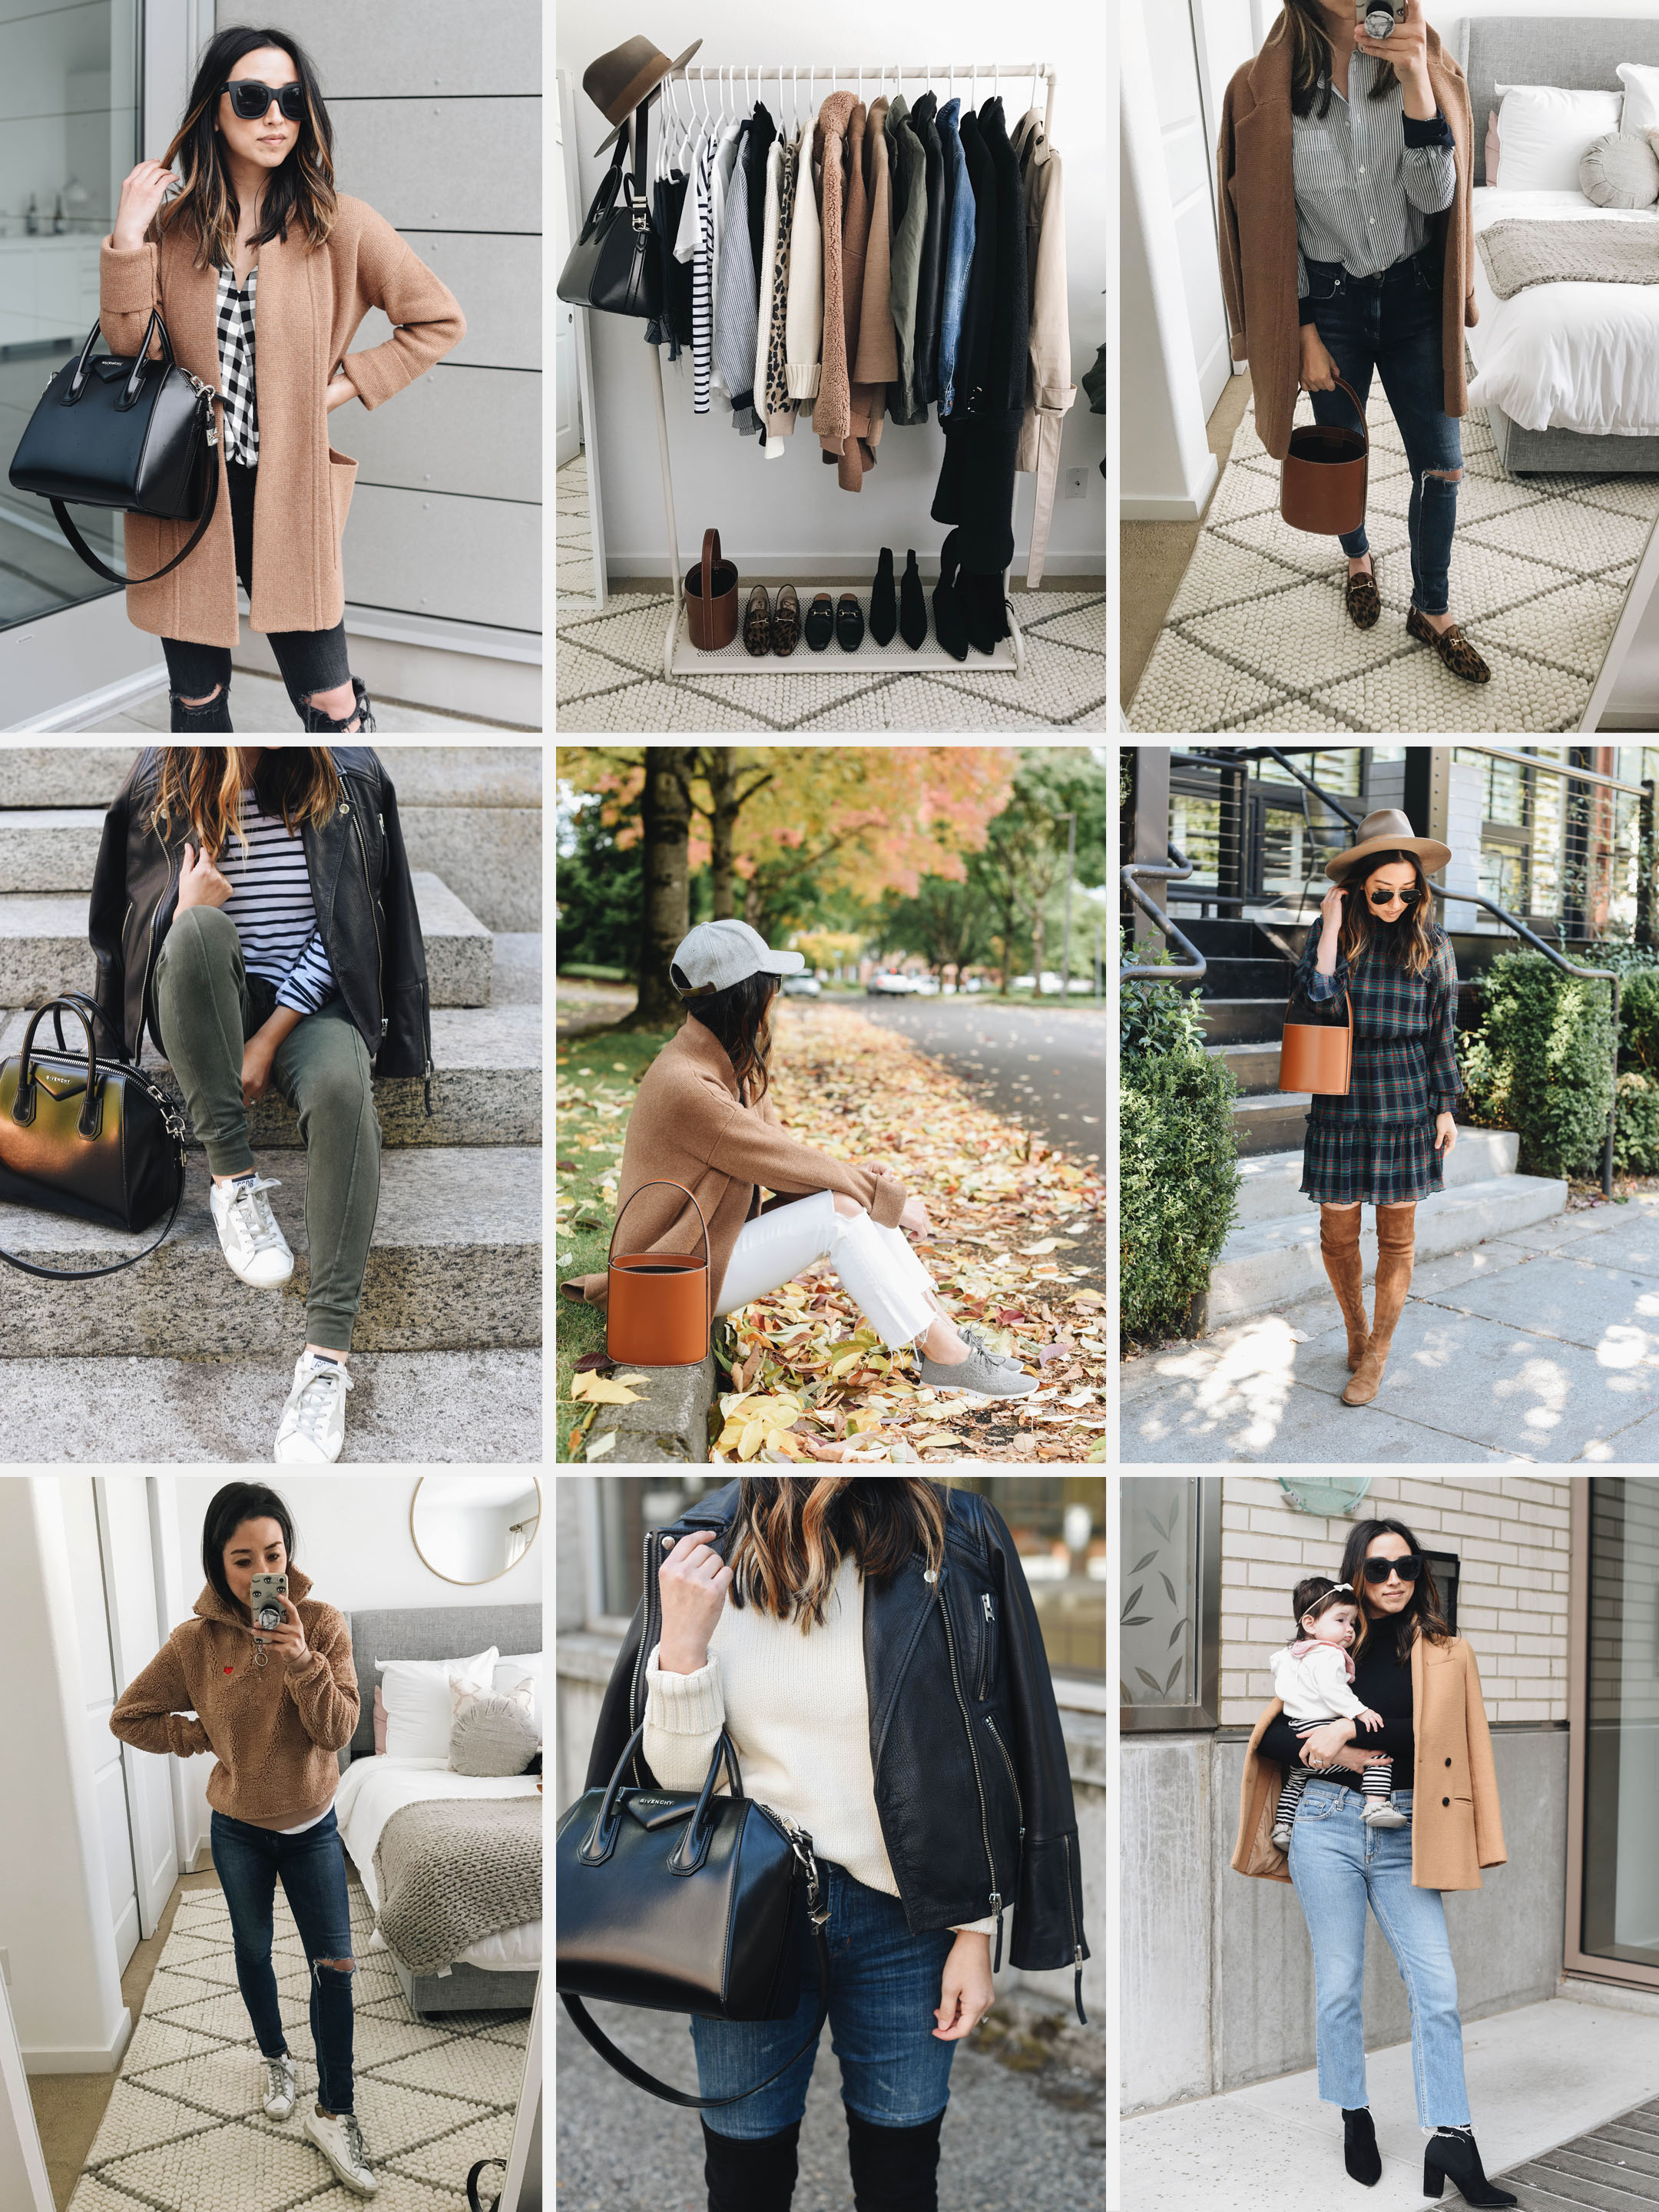 a4f45497b22 Instagram Outfit Roundup - Crystalin Marie